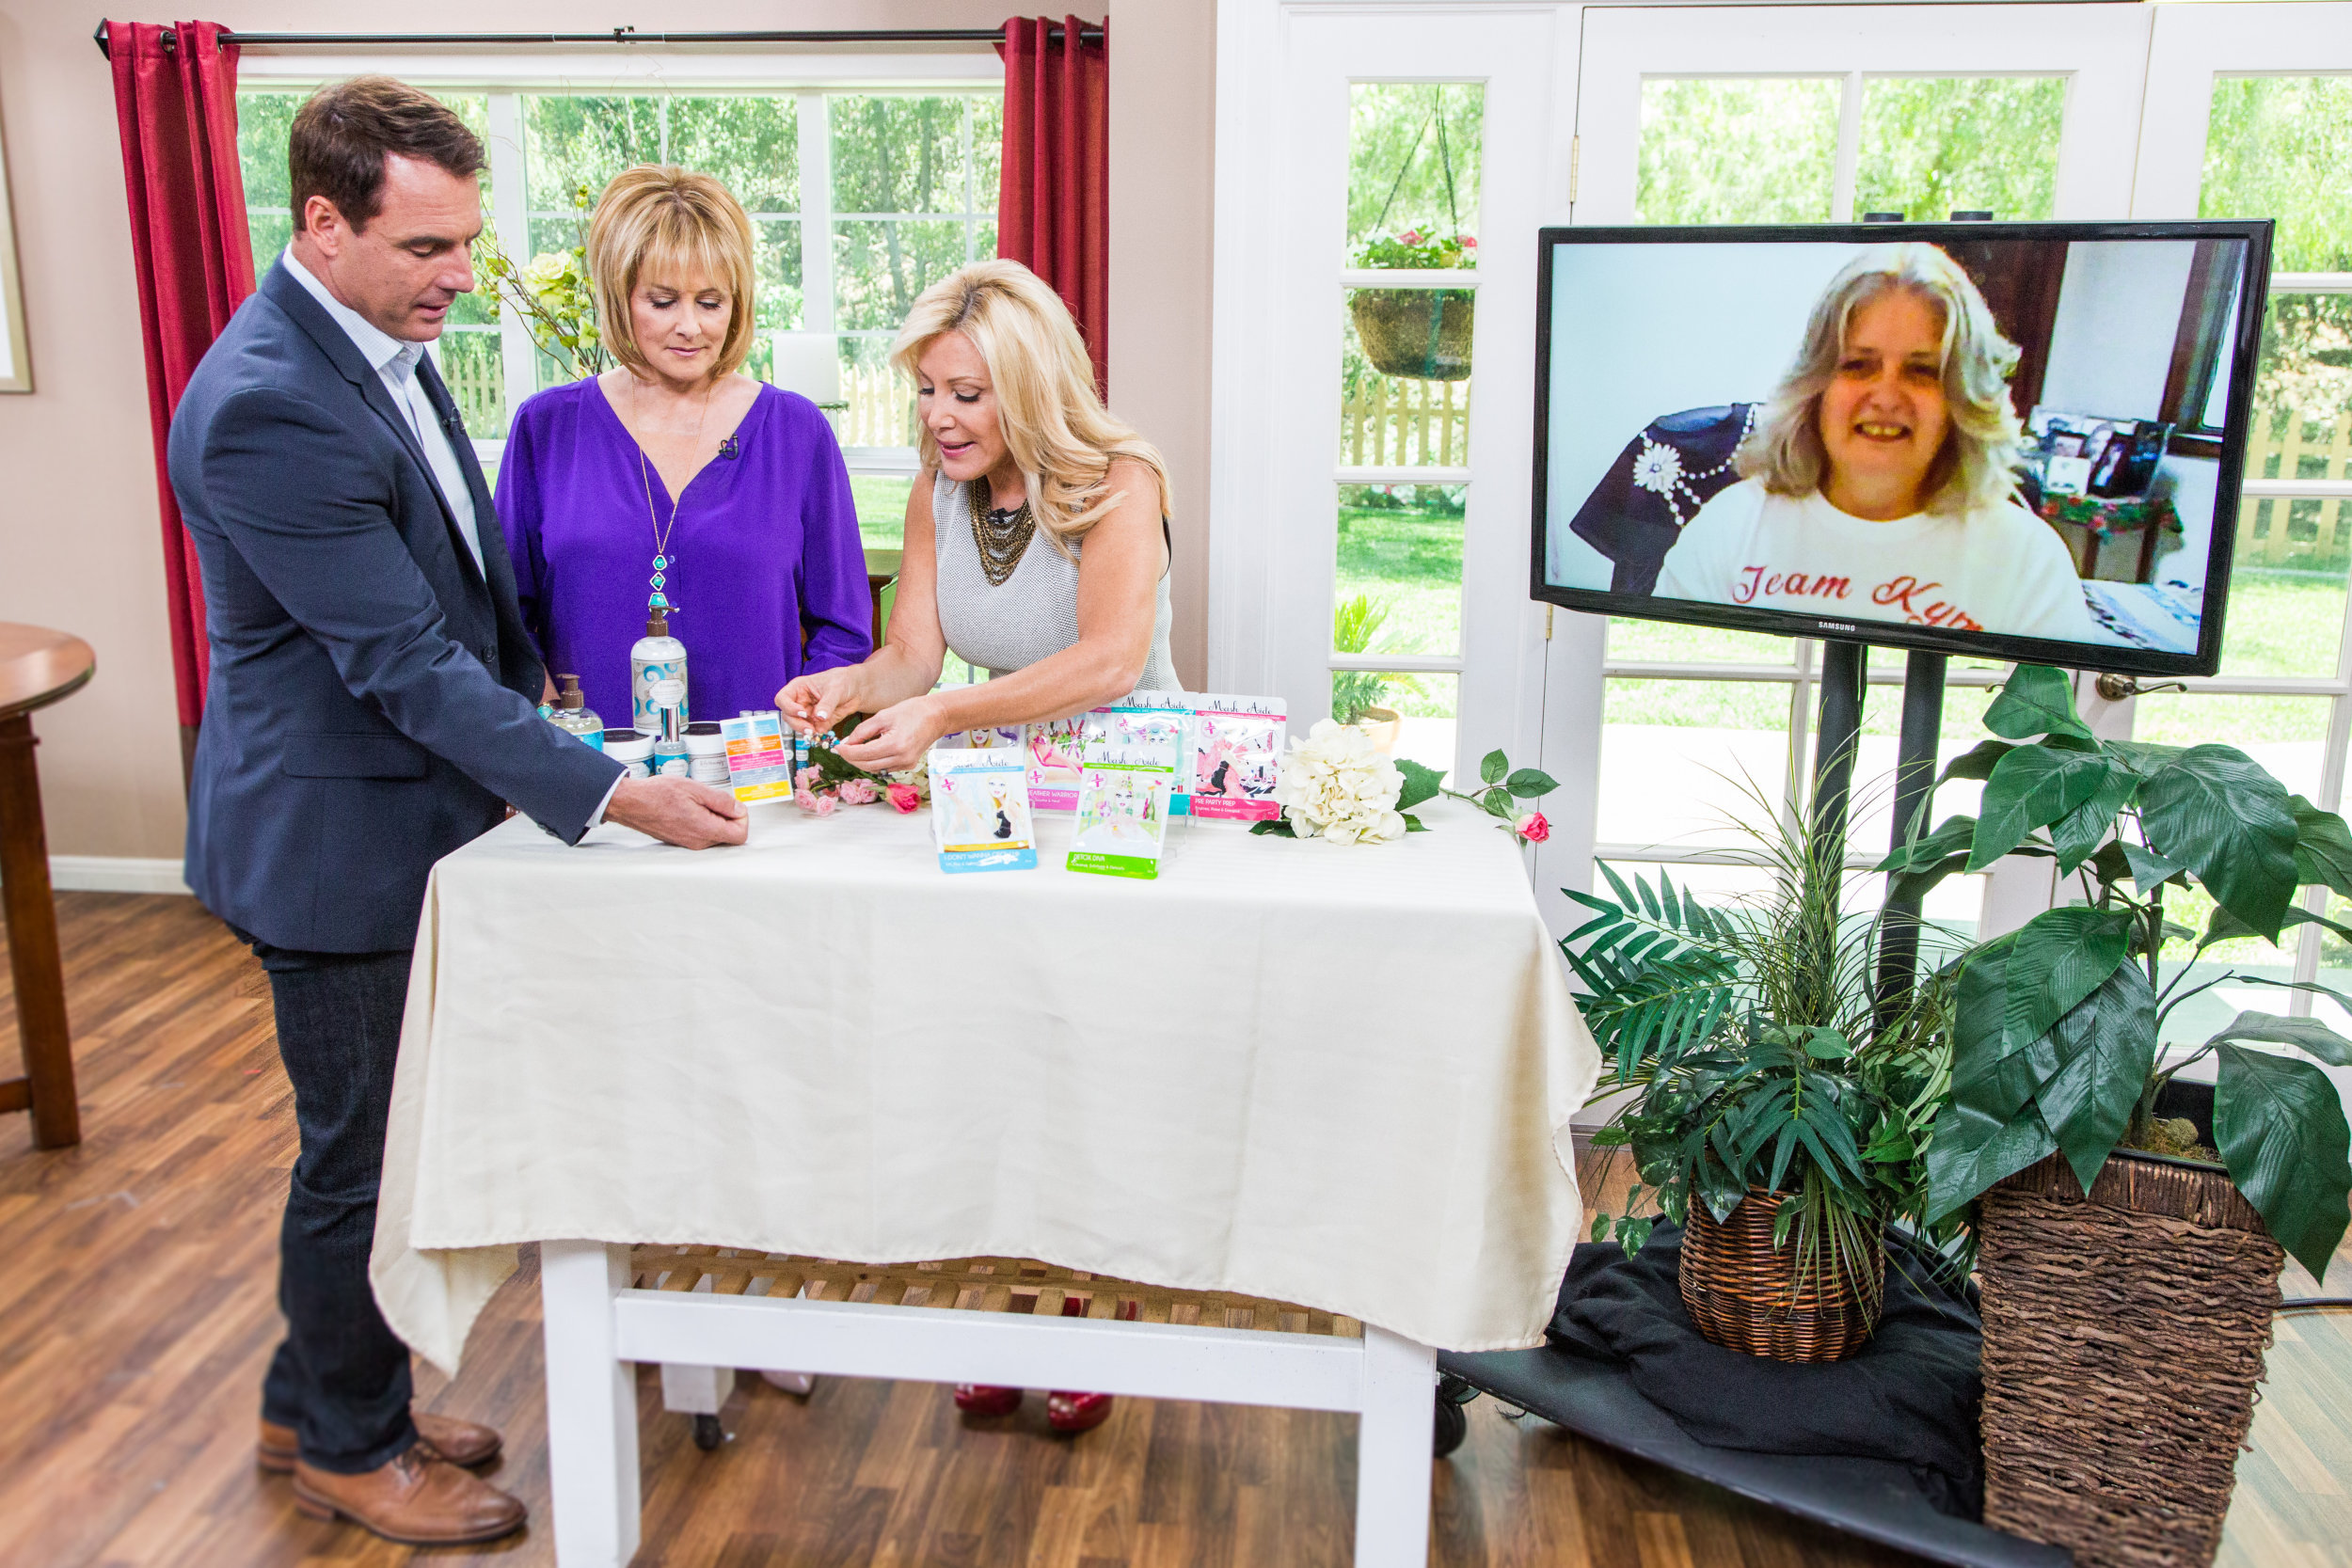 Kim Douglas Beauty Tips - Home & Family - Video